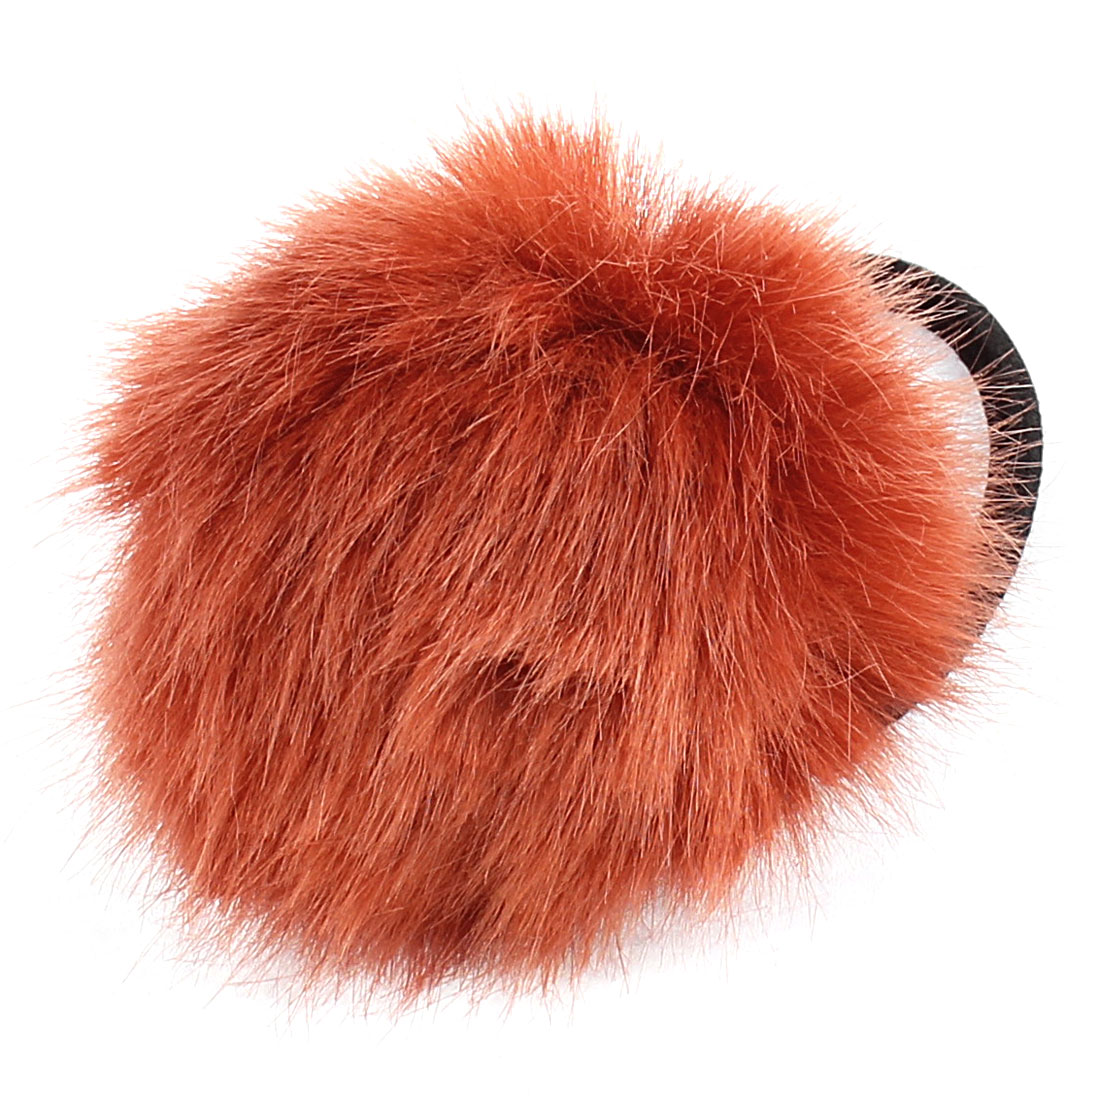 Lady Fluffy Faux Fur Decor Stretchy Band Hair Tie Ponytail Hairband Medium Brown